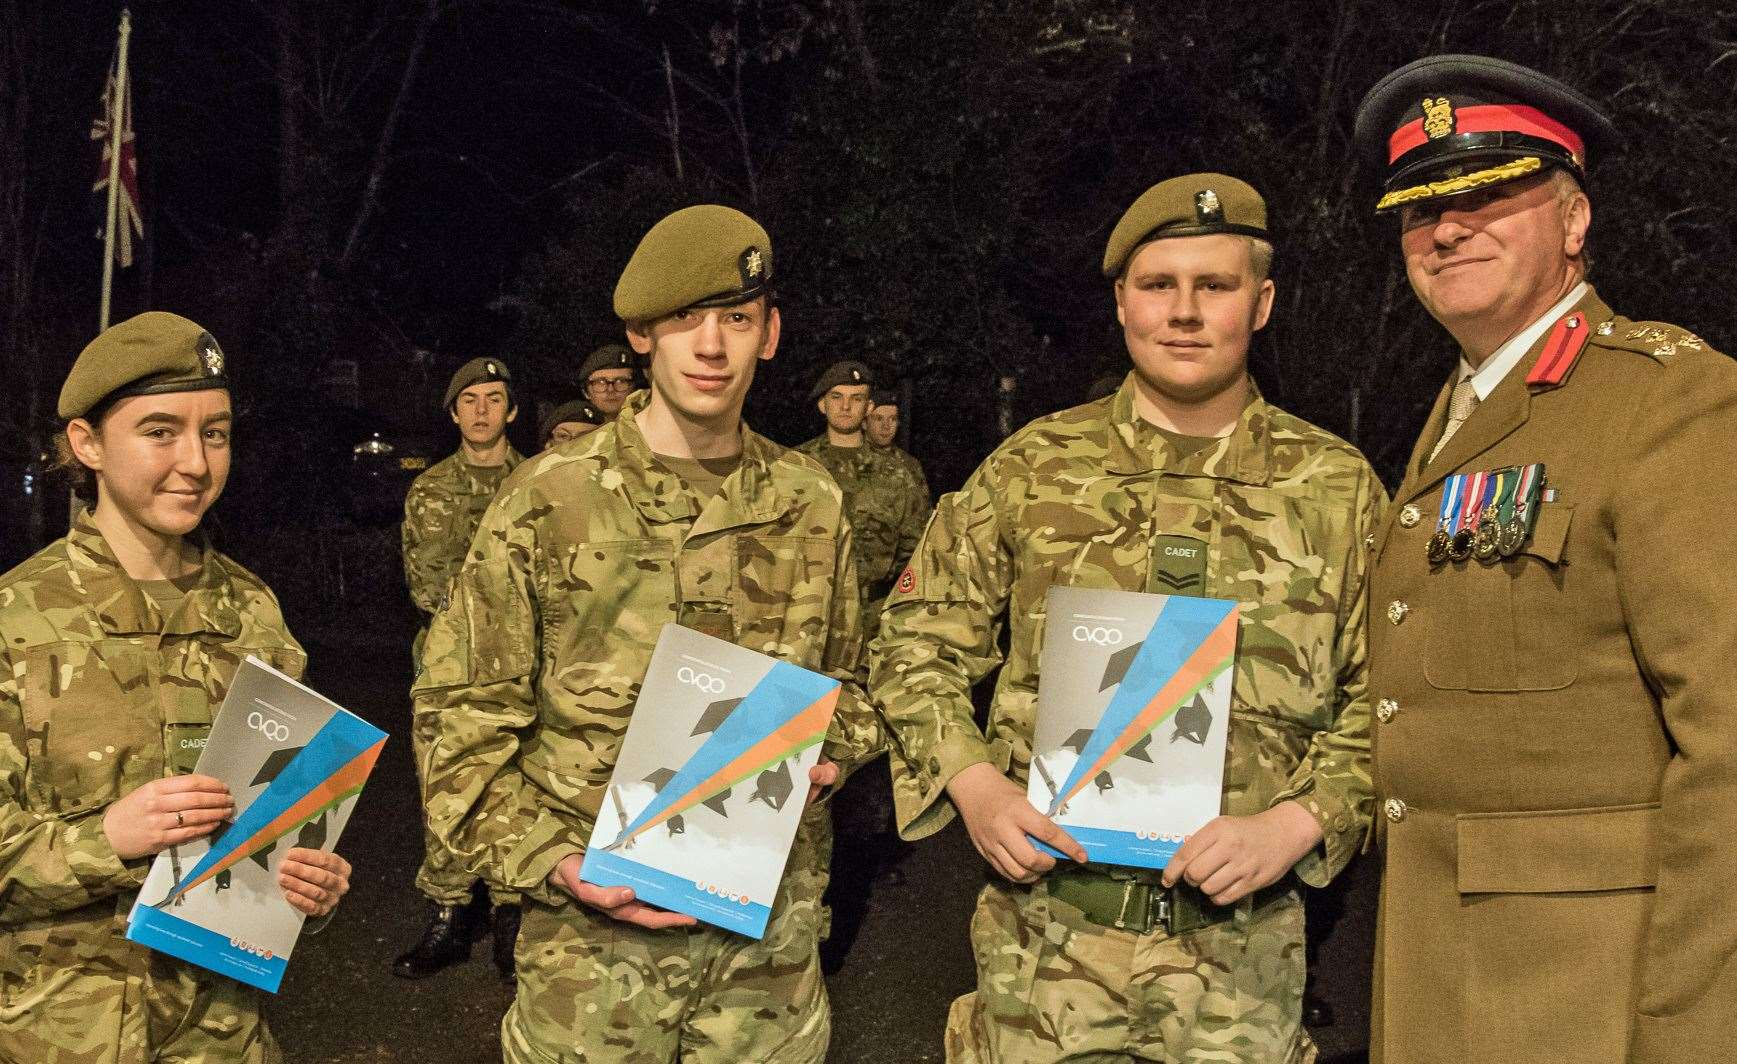 Chatteris Army Cadets and their commander receive awards and